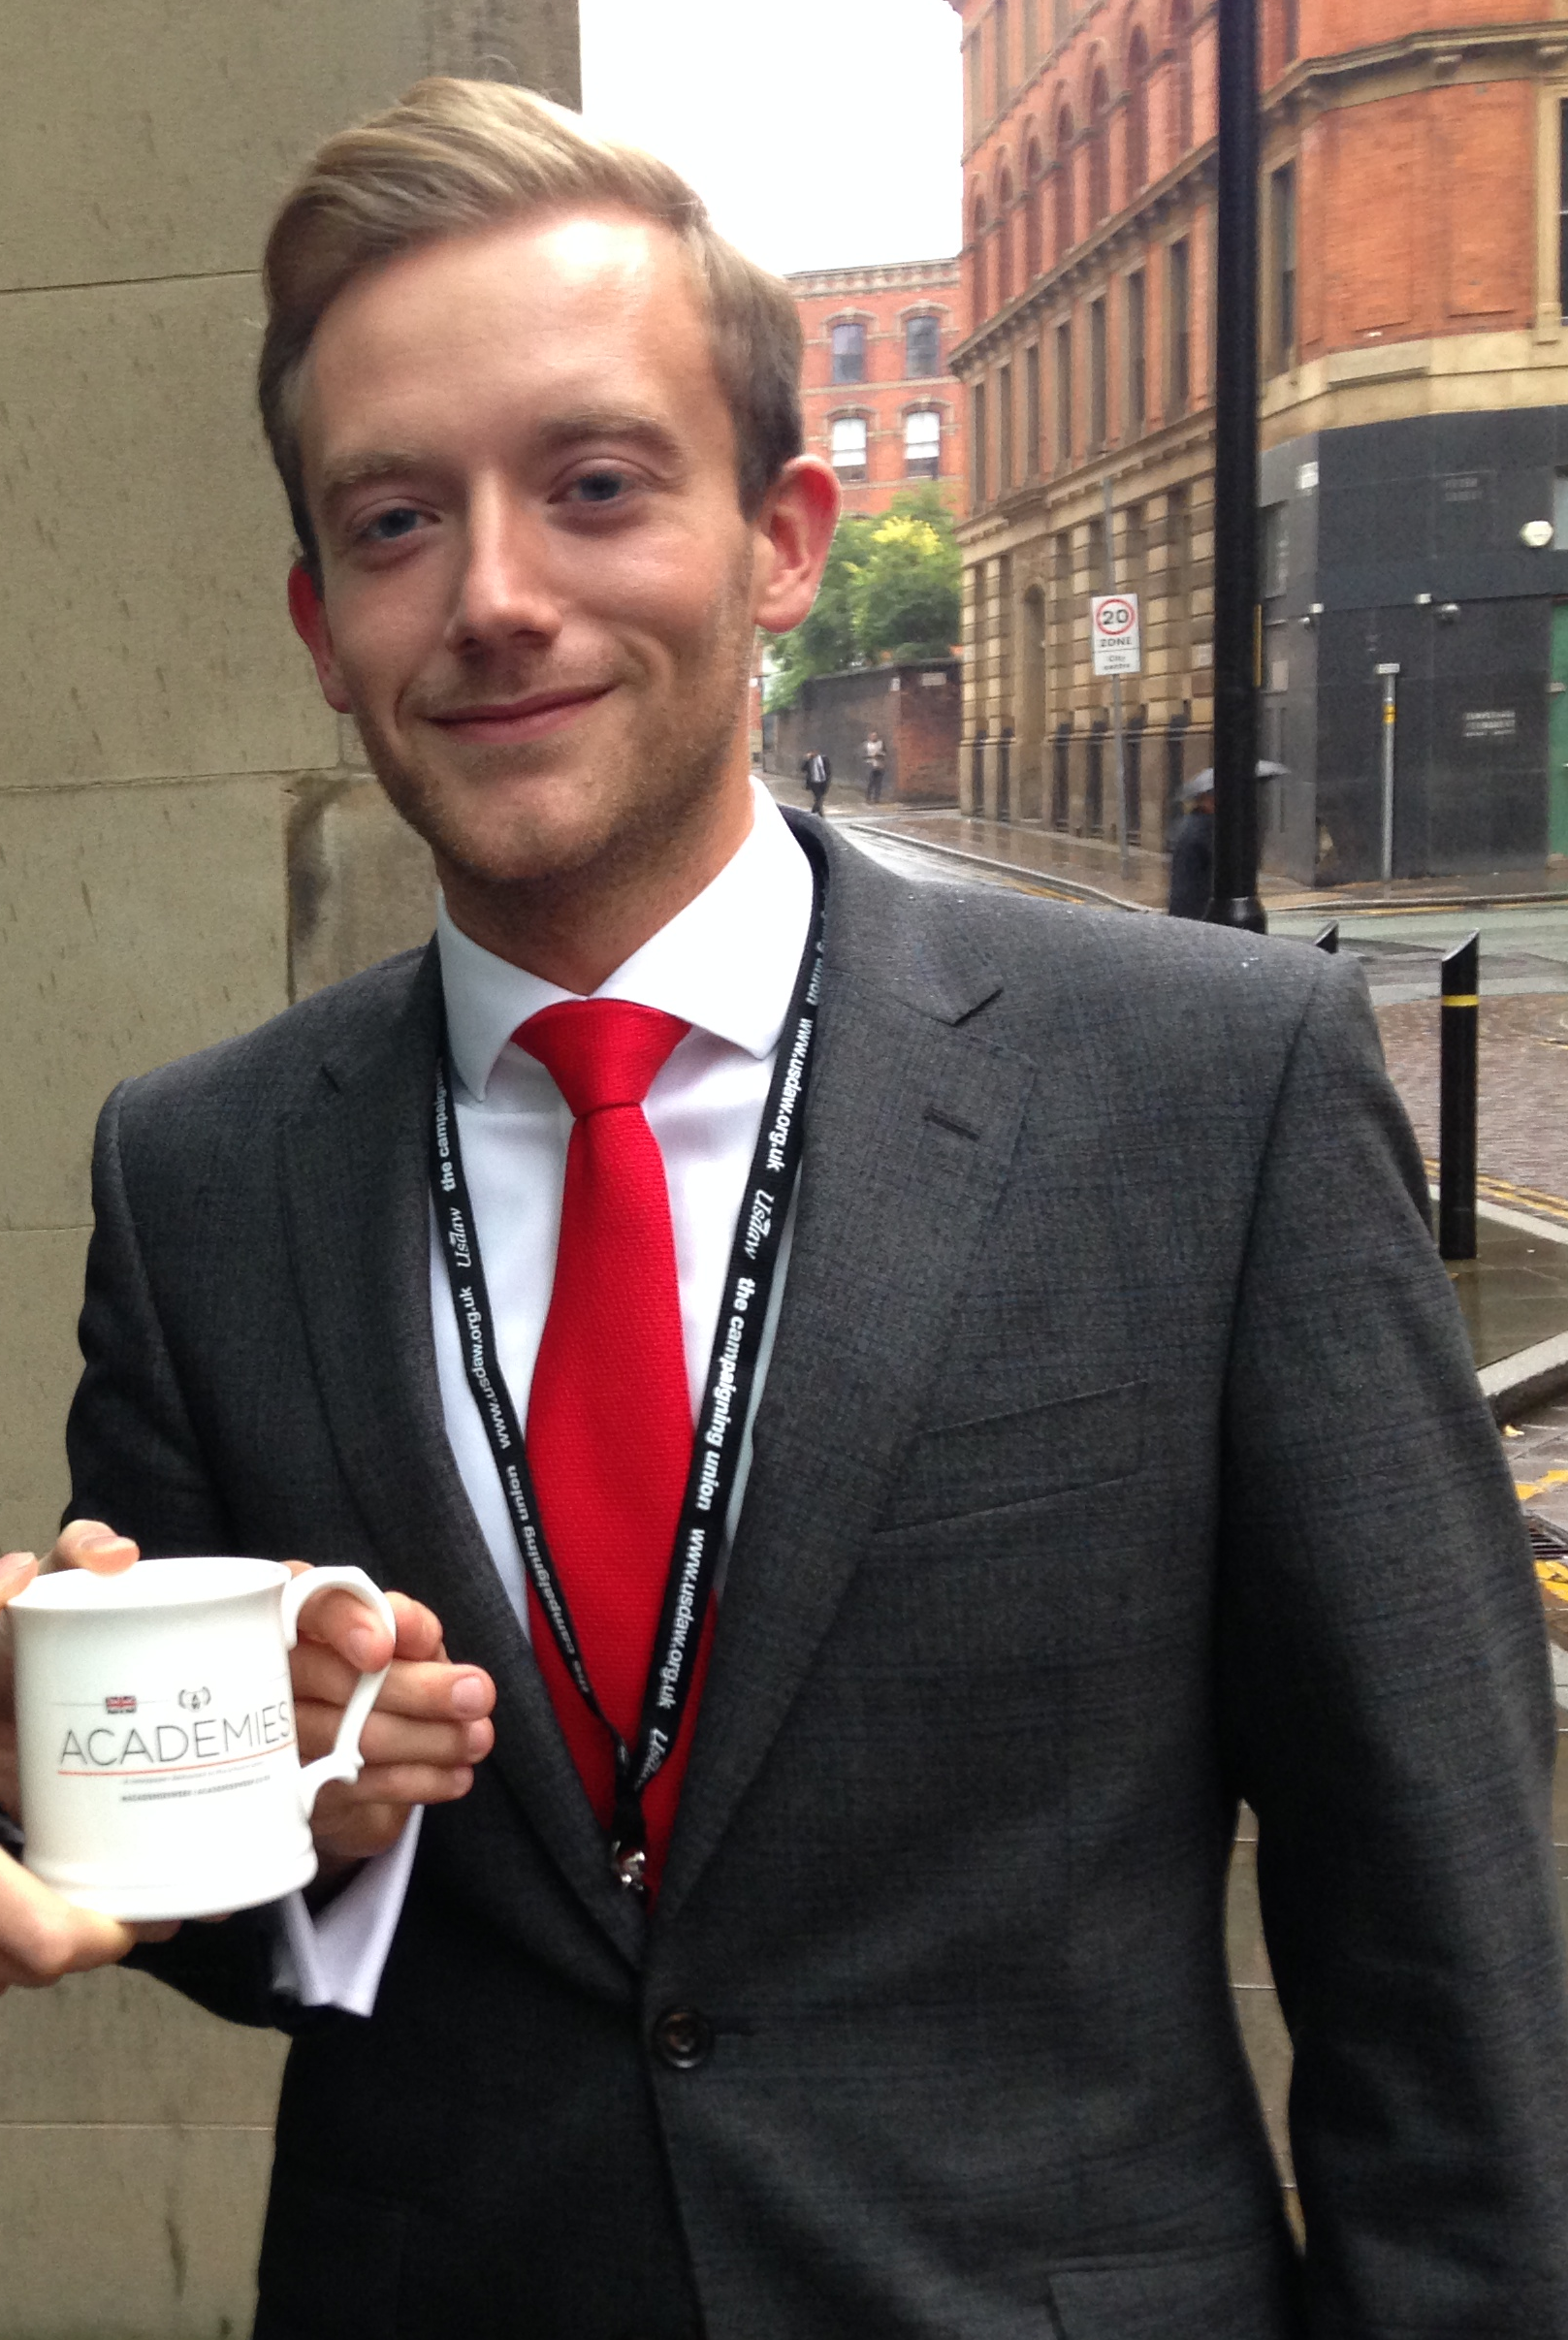 Schools Week managing director Shane Mann prepares to dig out the disregarded Academies Week mugs